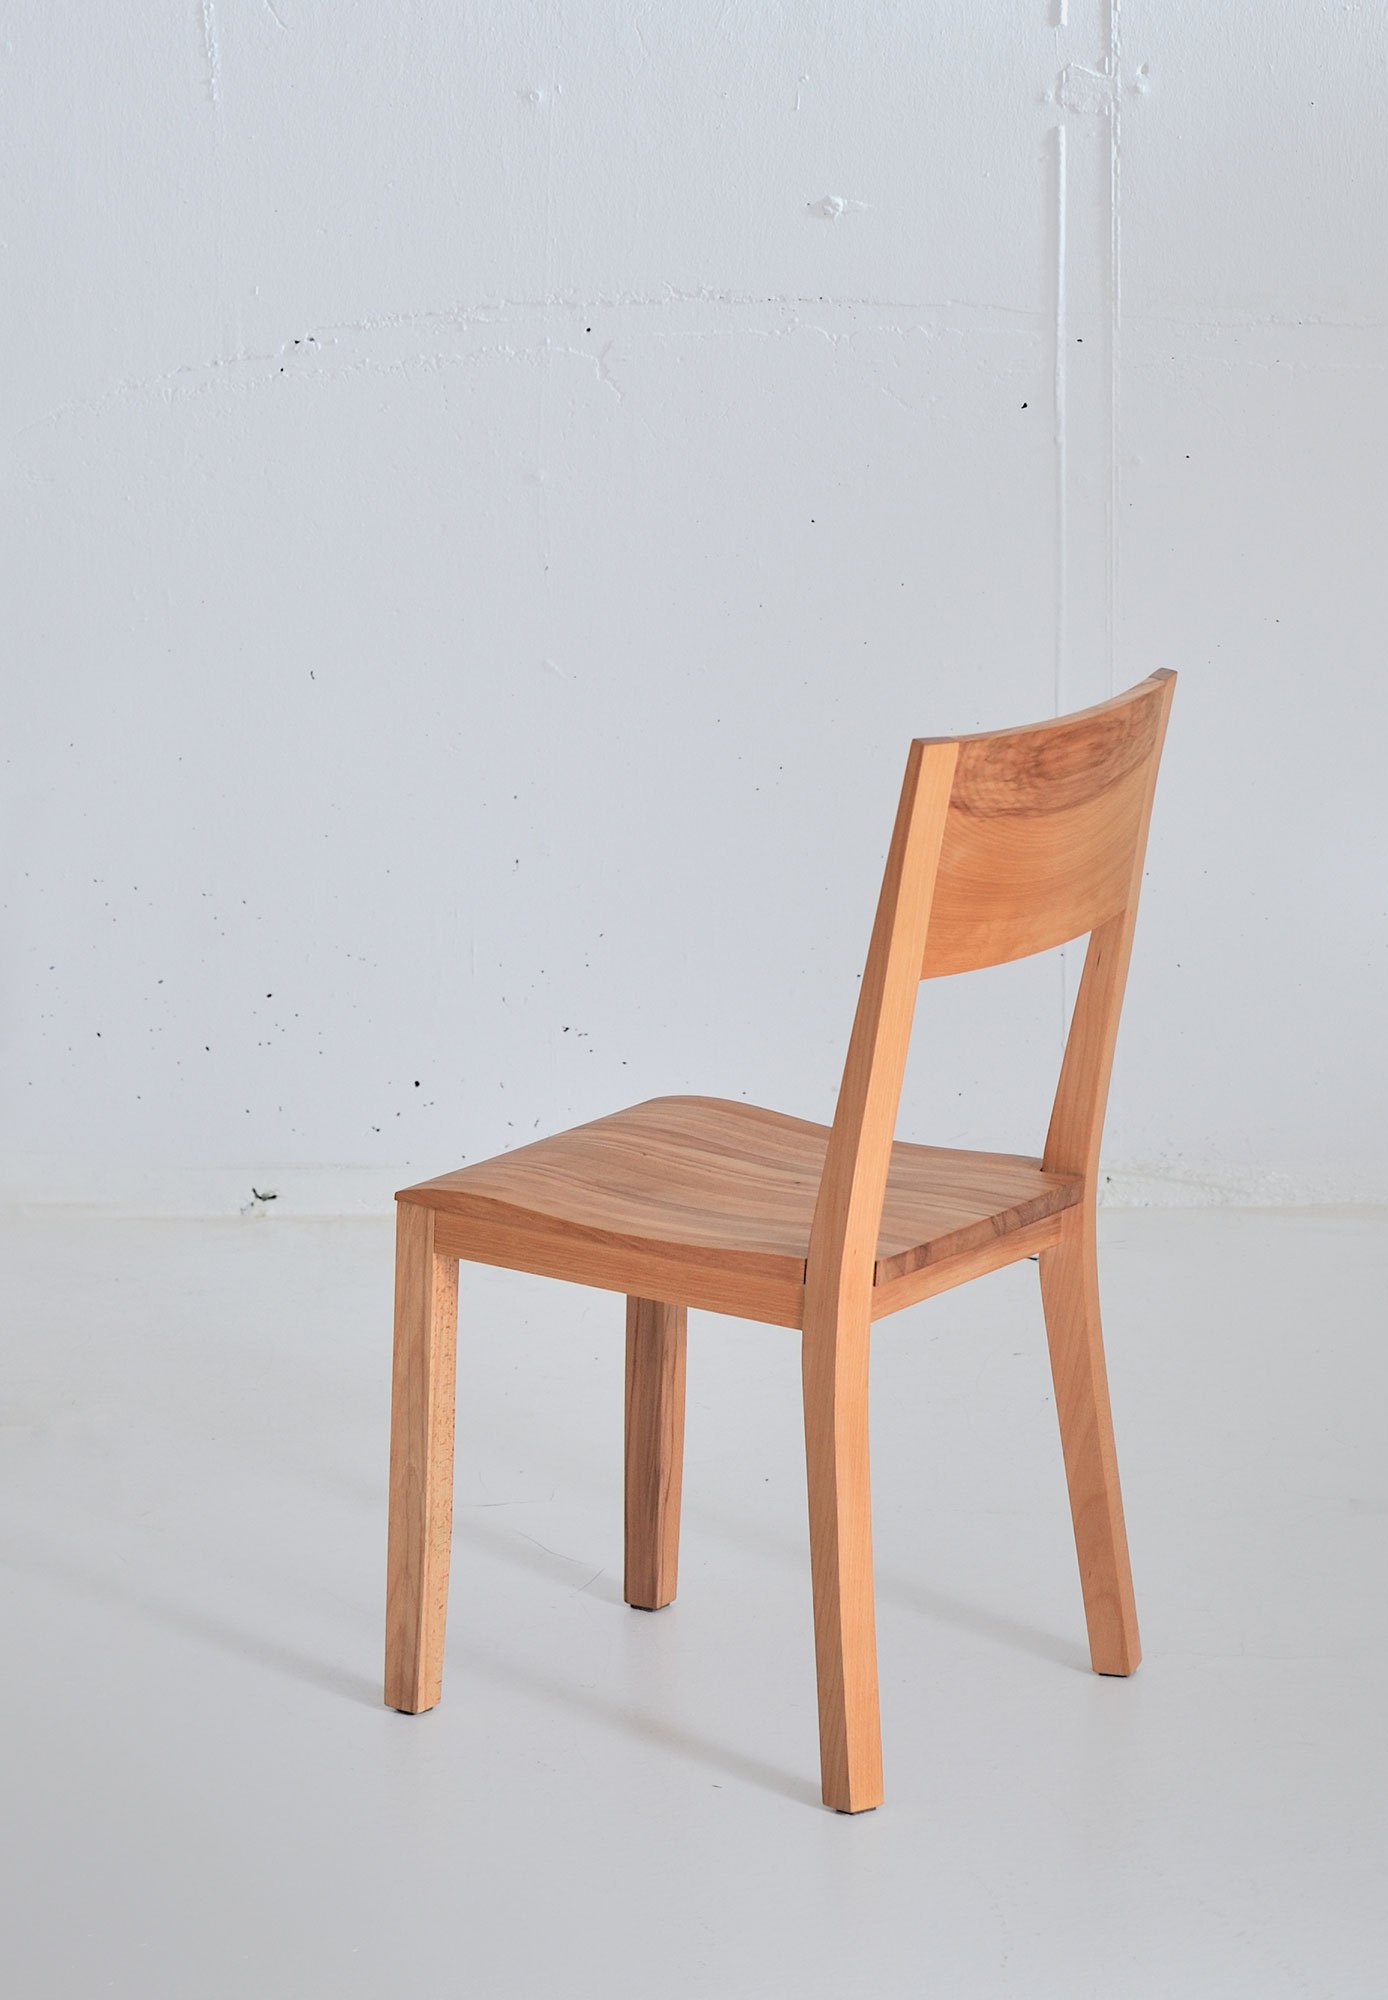 Dining Room Wooden Chair NOMI 3739 custom made in solid wood by vitamin design